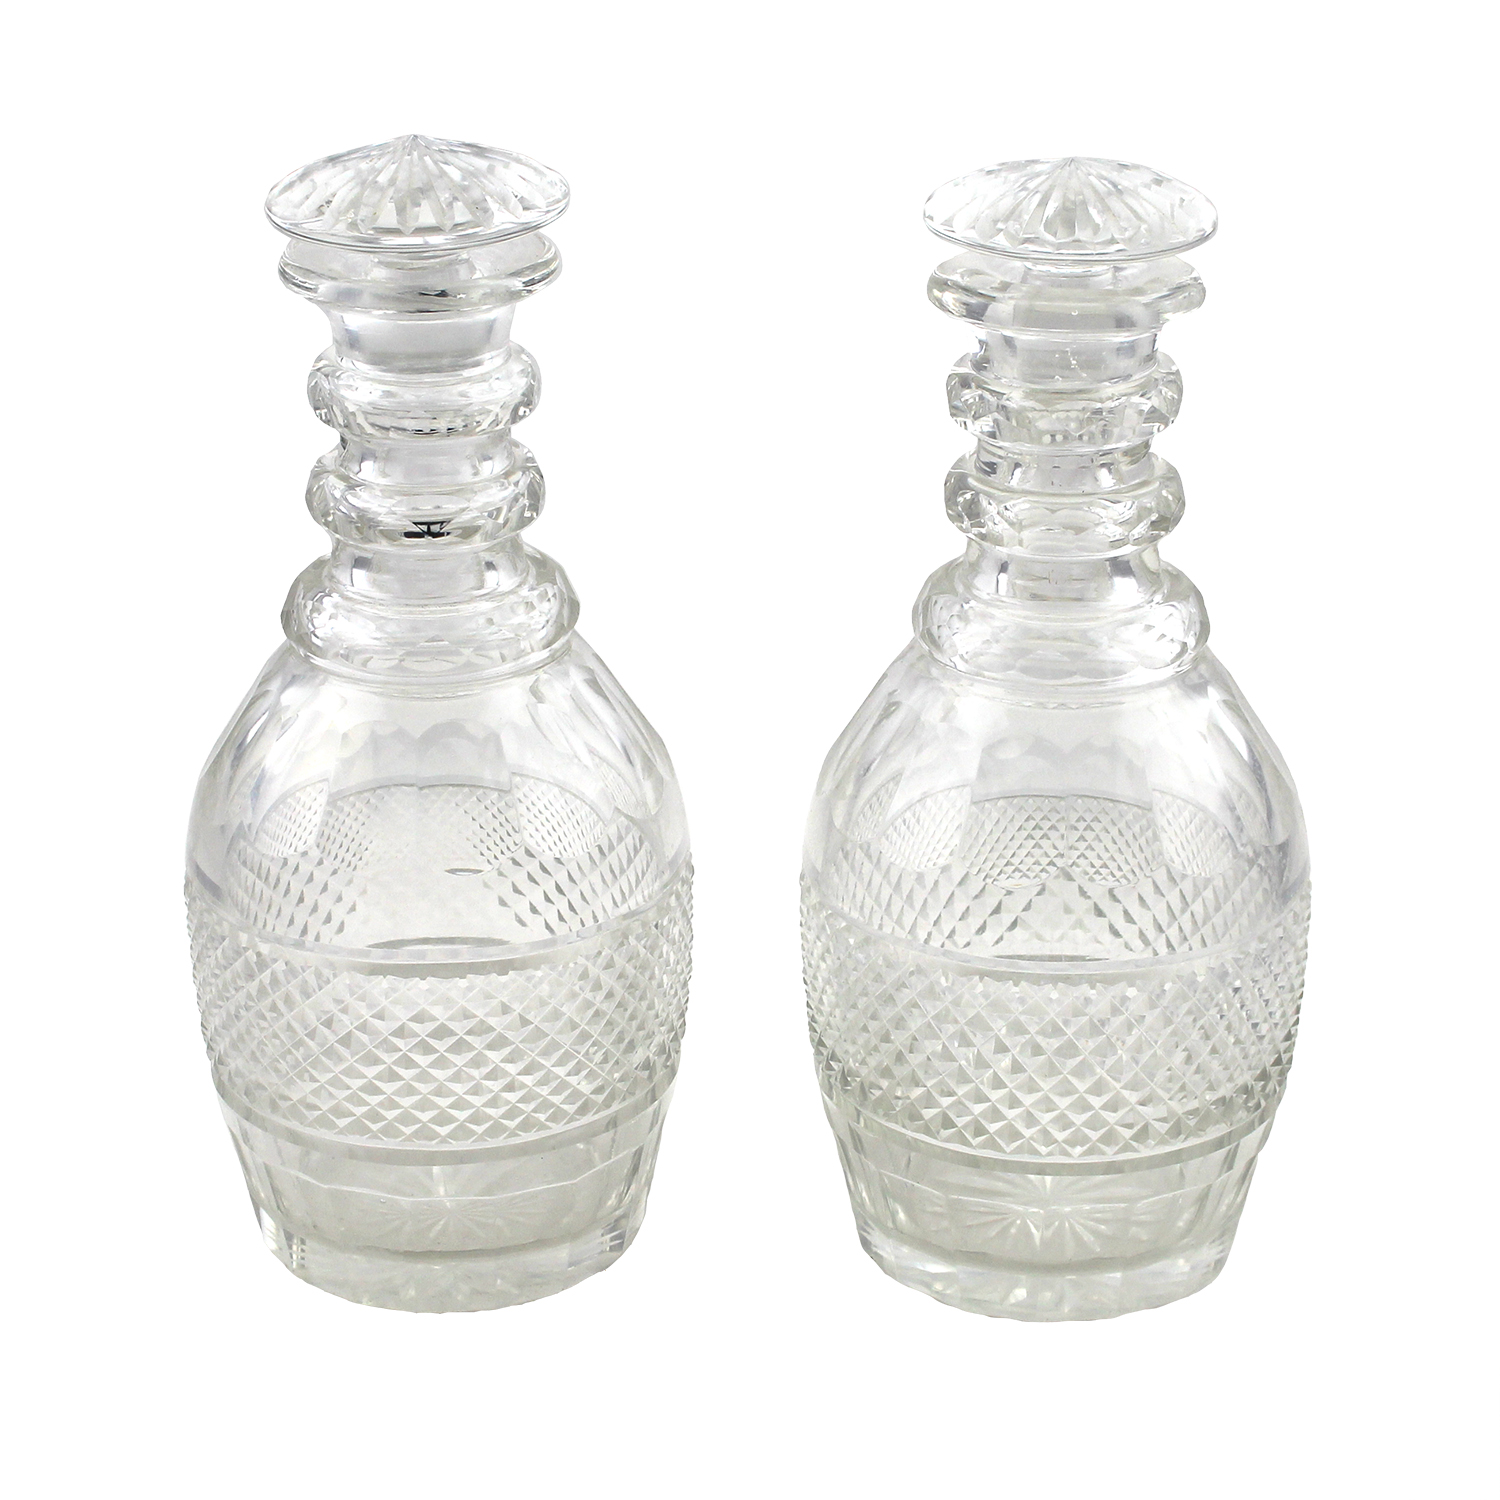 Pair of English Cut Glass Decanters